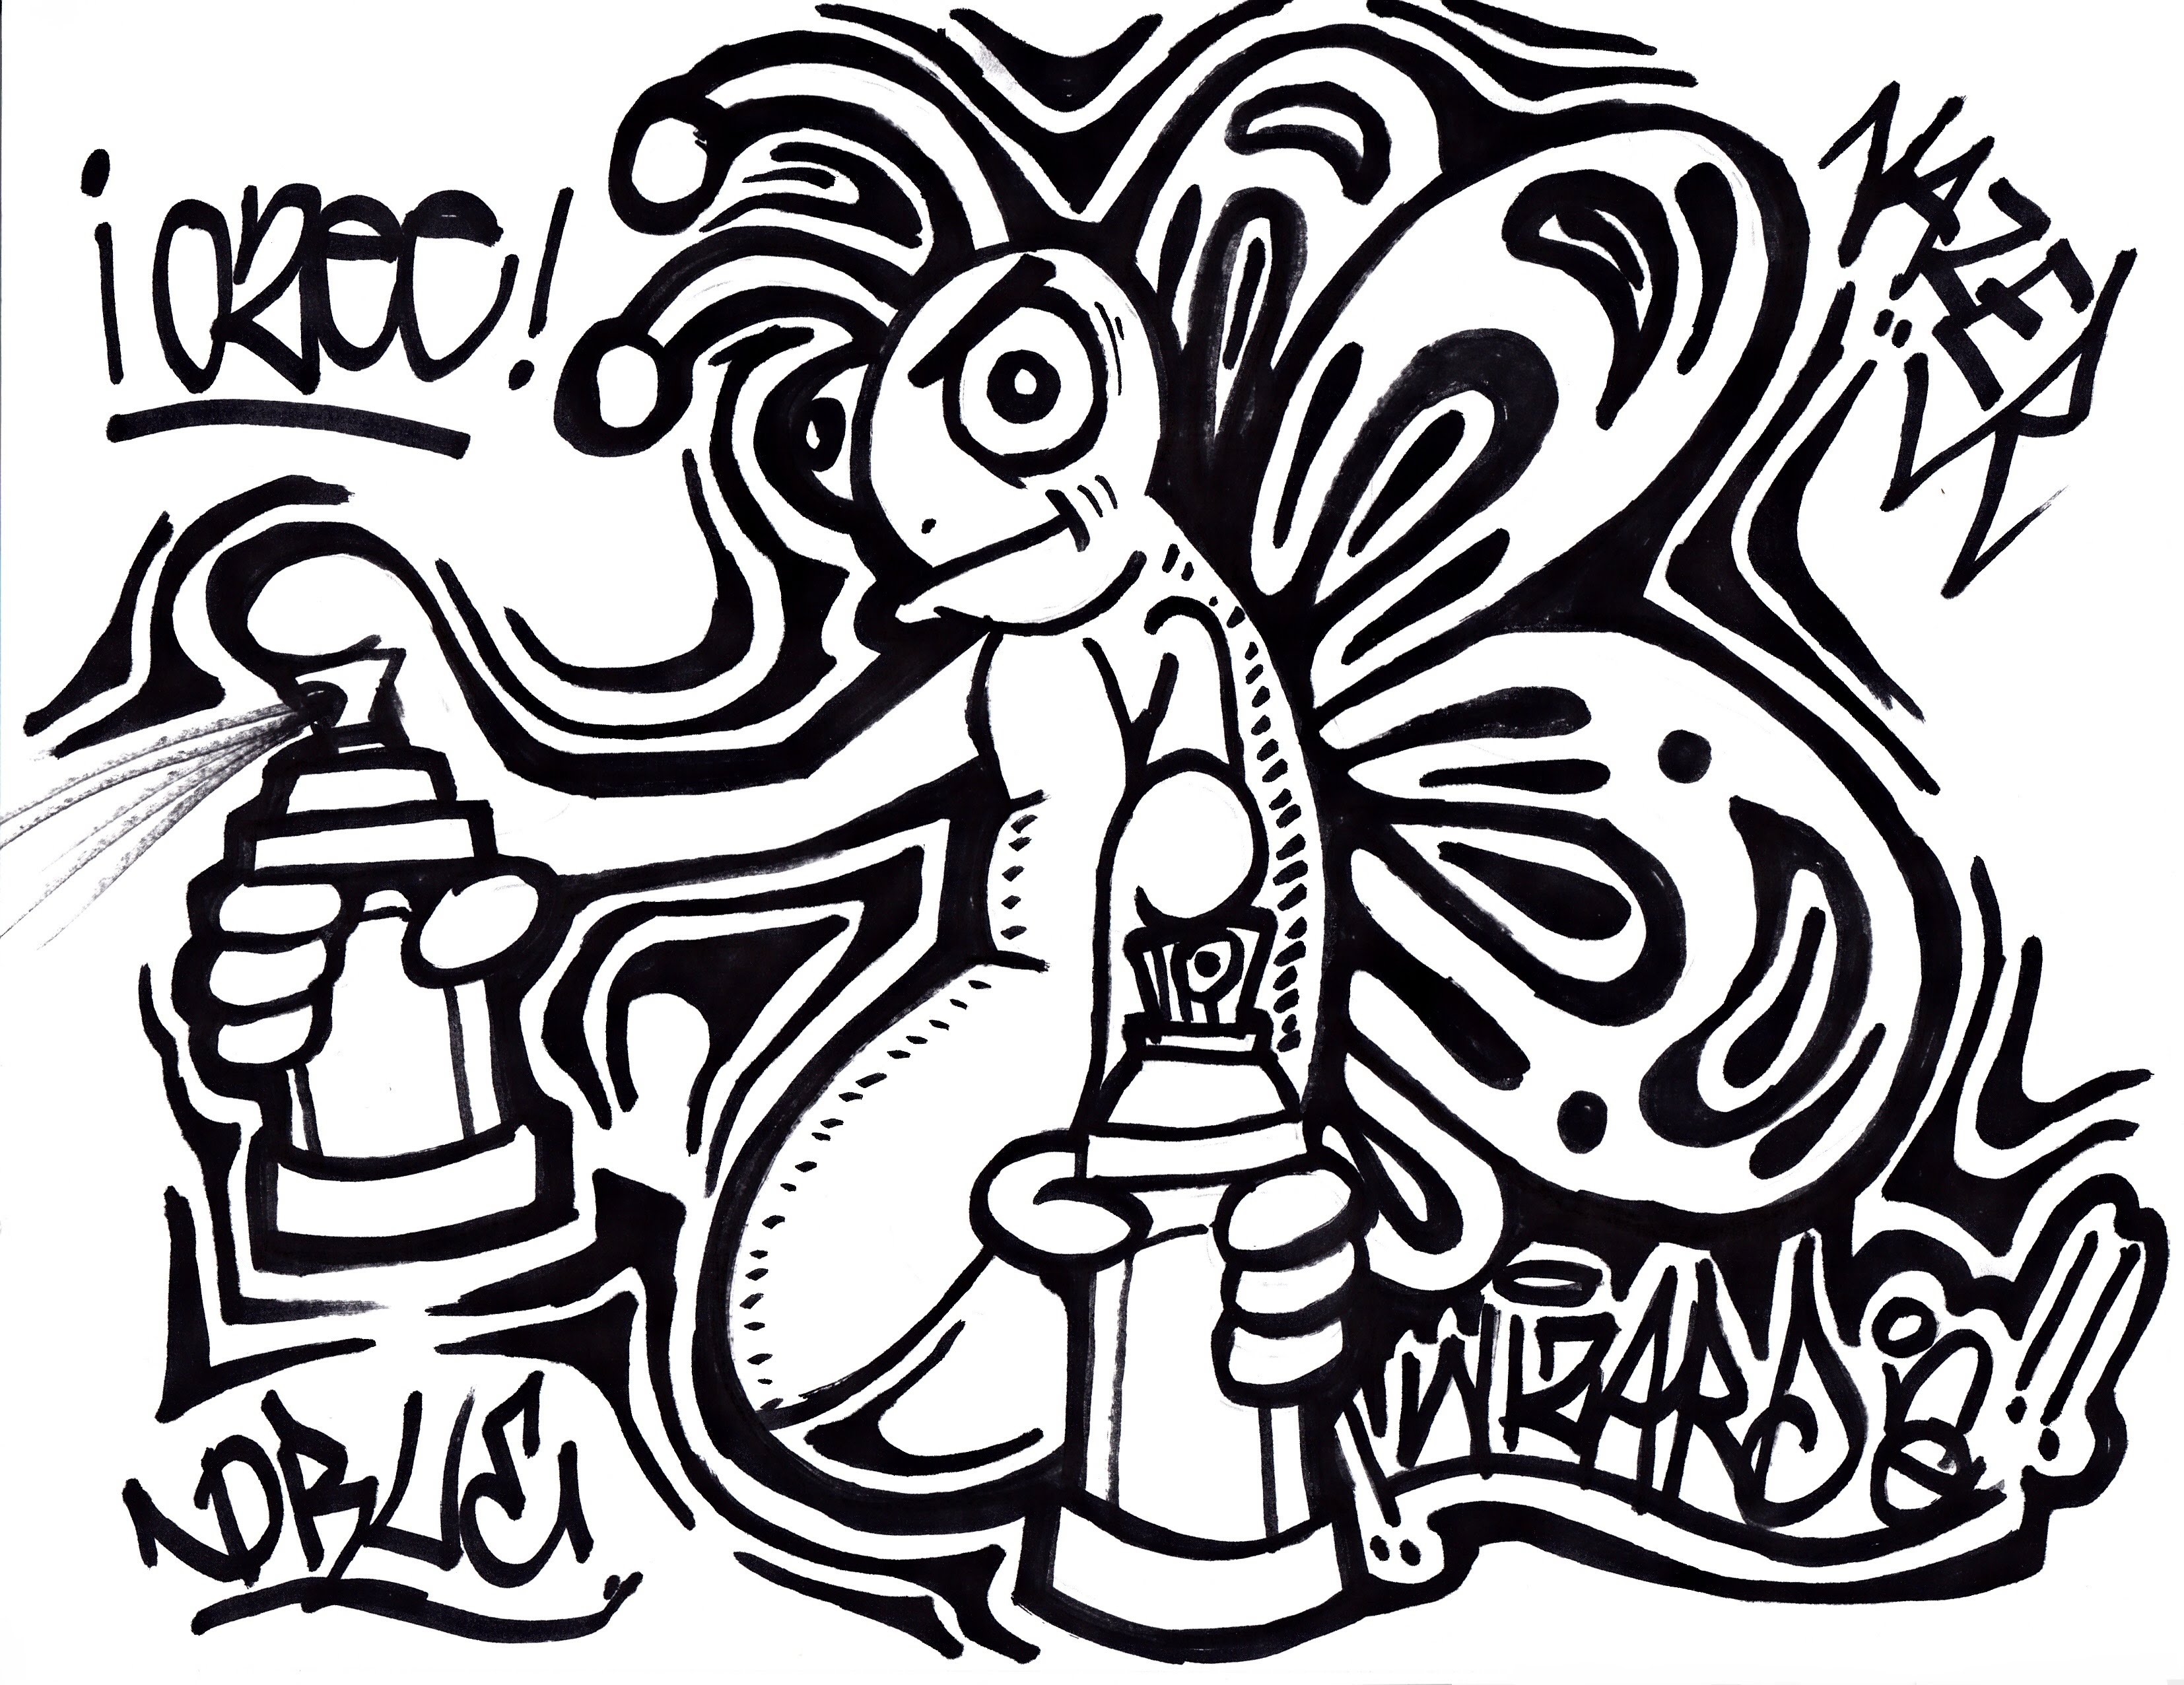 Graffiti Spray Cans Drawing At Getdrawings Com Free For Personal